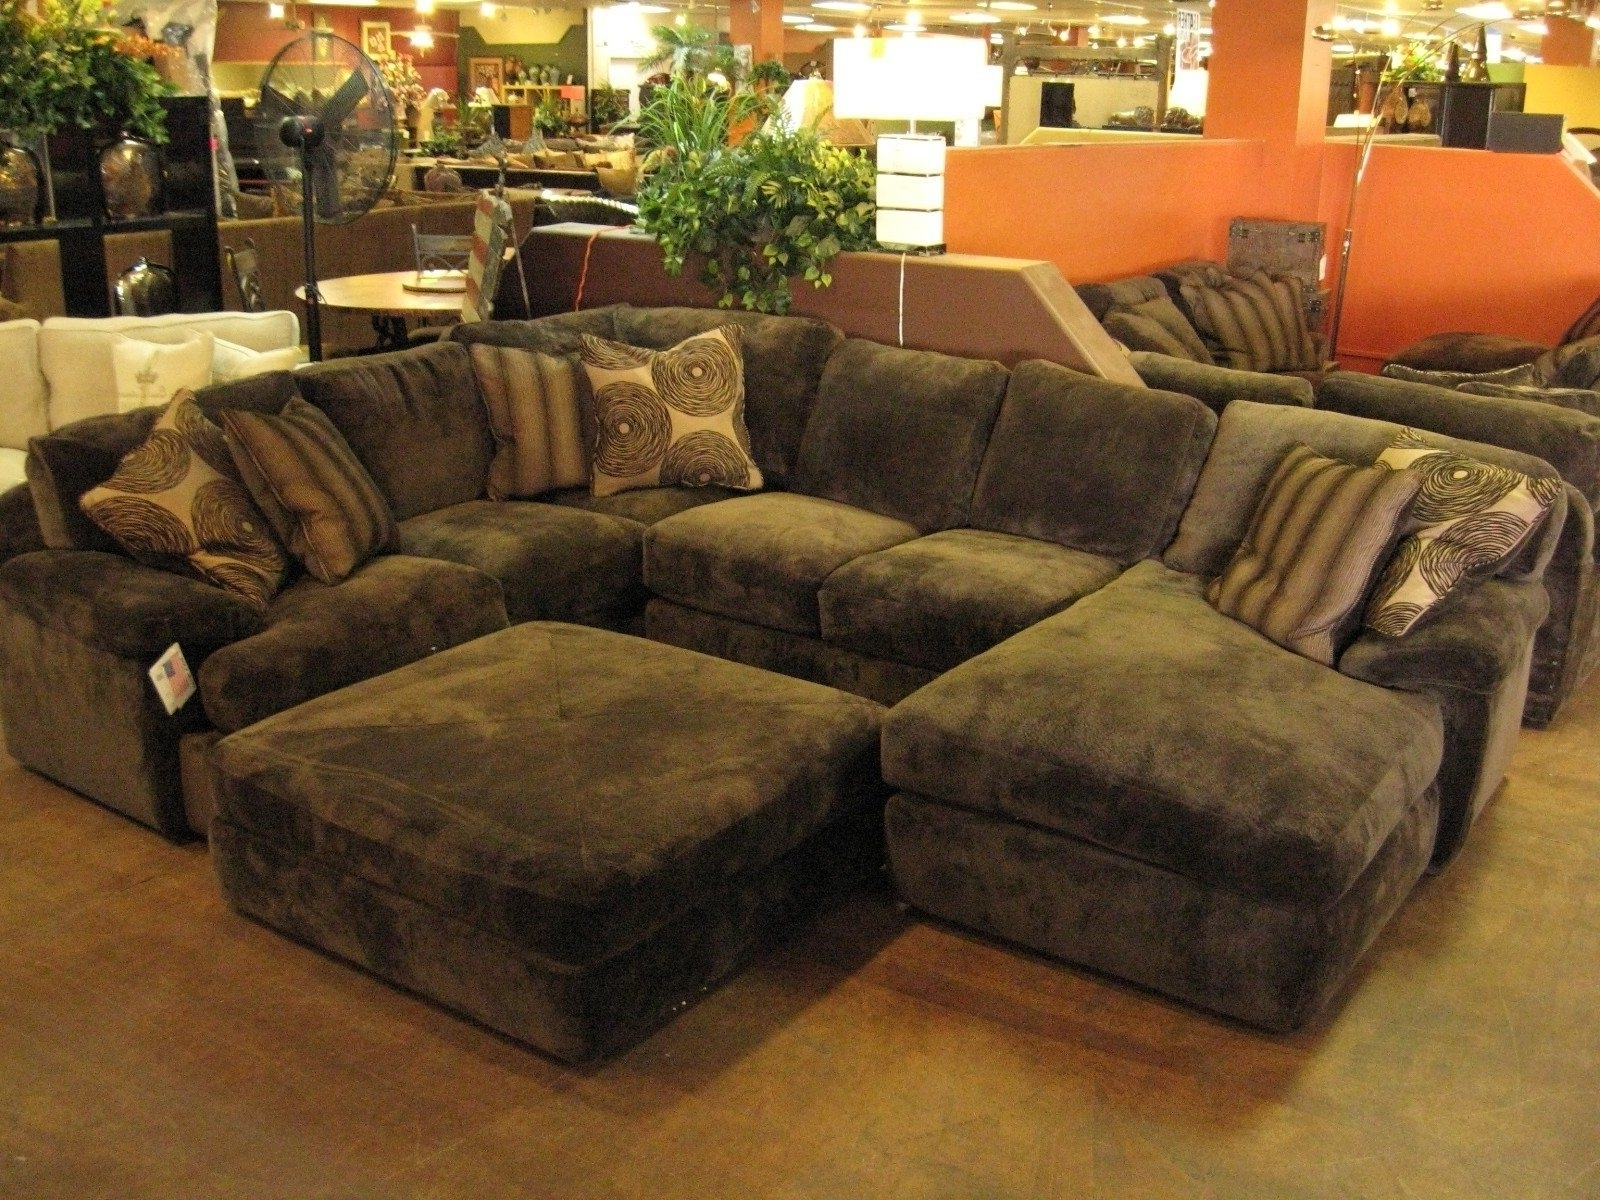 2019 Stylish Sectional Sofa With Oversized Ottoman – Mediasupload Inside Leather Sectionals With Ottoman (View 7 of 20)